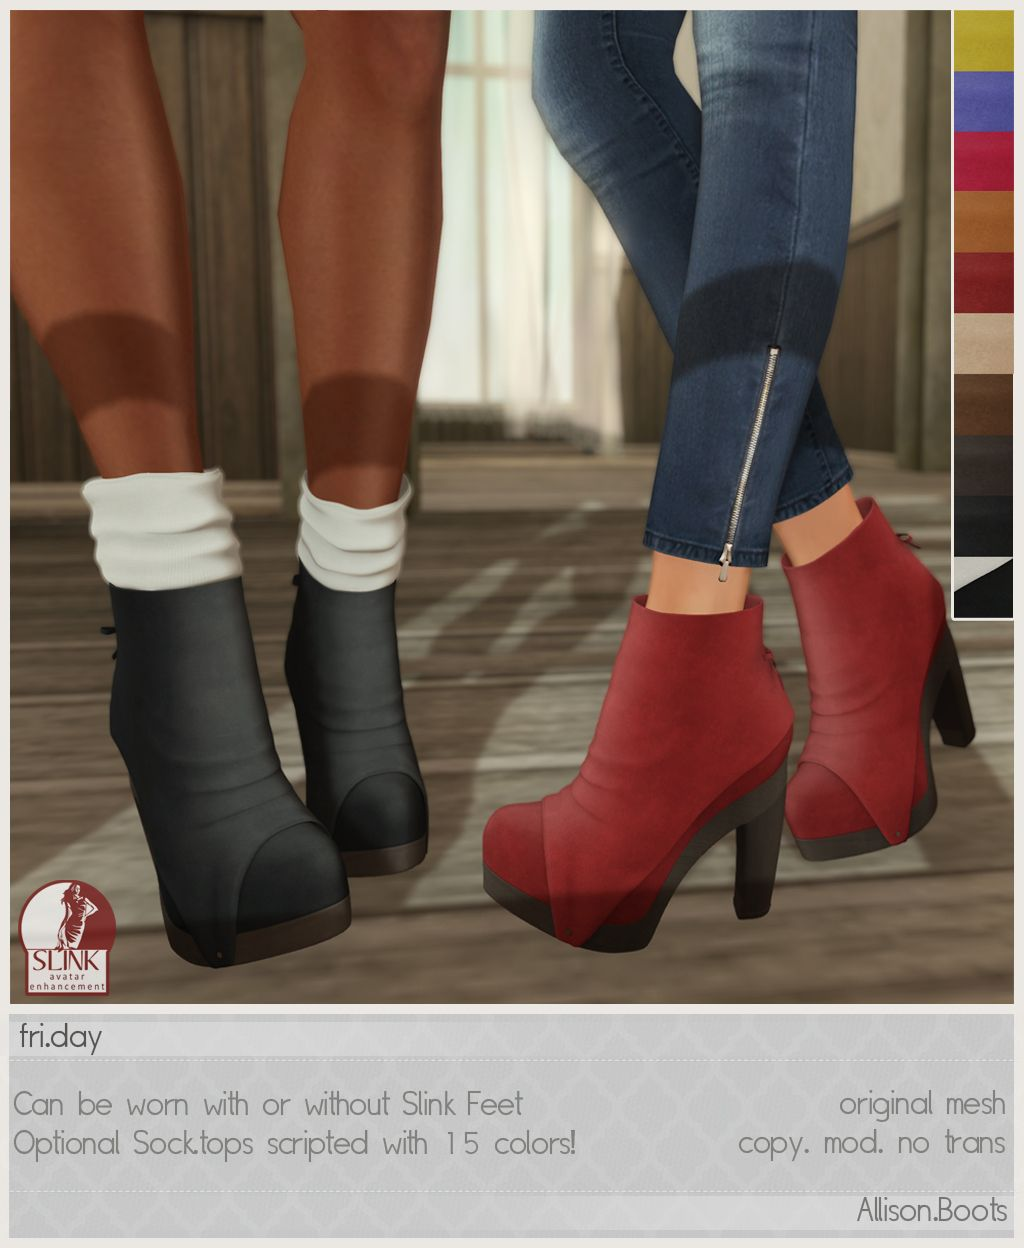 Fri.day Allison Boots, 10 variations available - demo available - optional sock tops, scripted with 15 colors included w/ HUD - non slink & slink versions included - 188L each